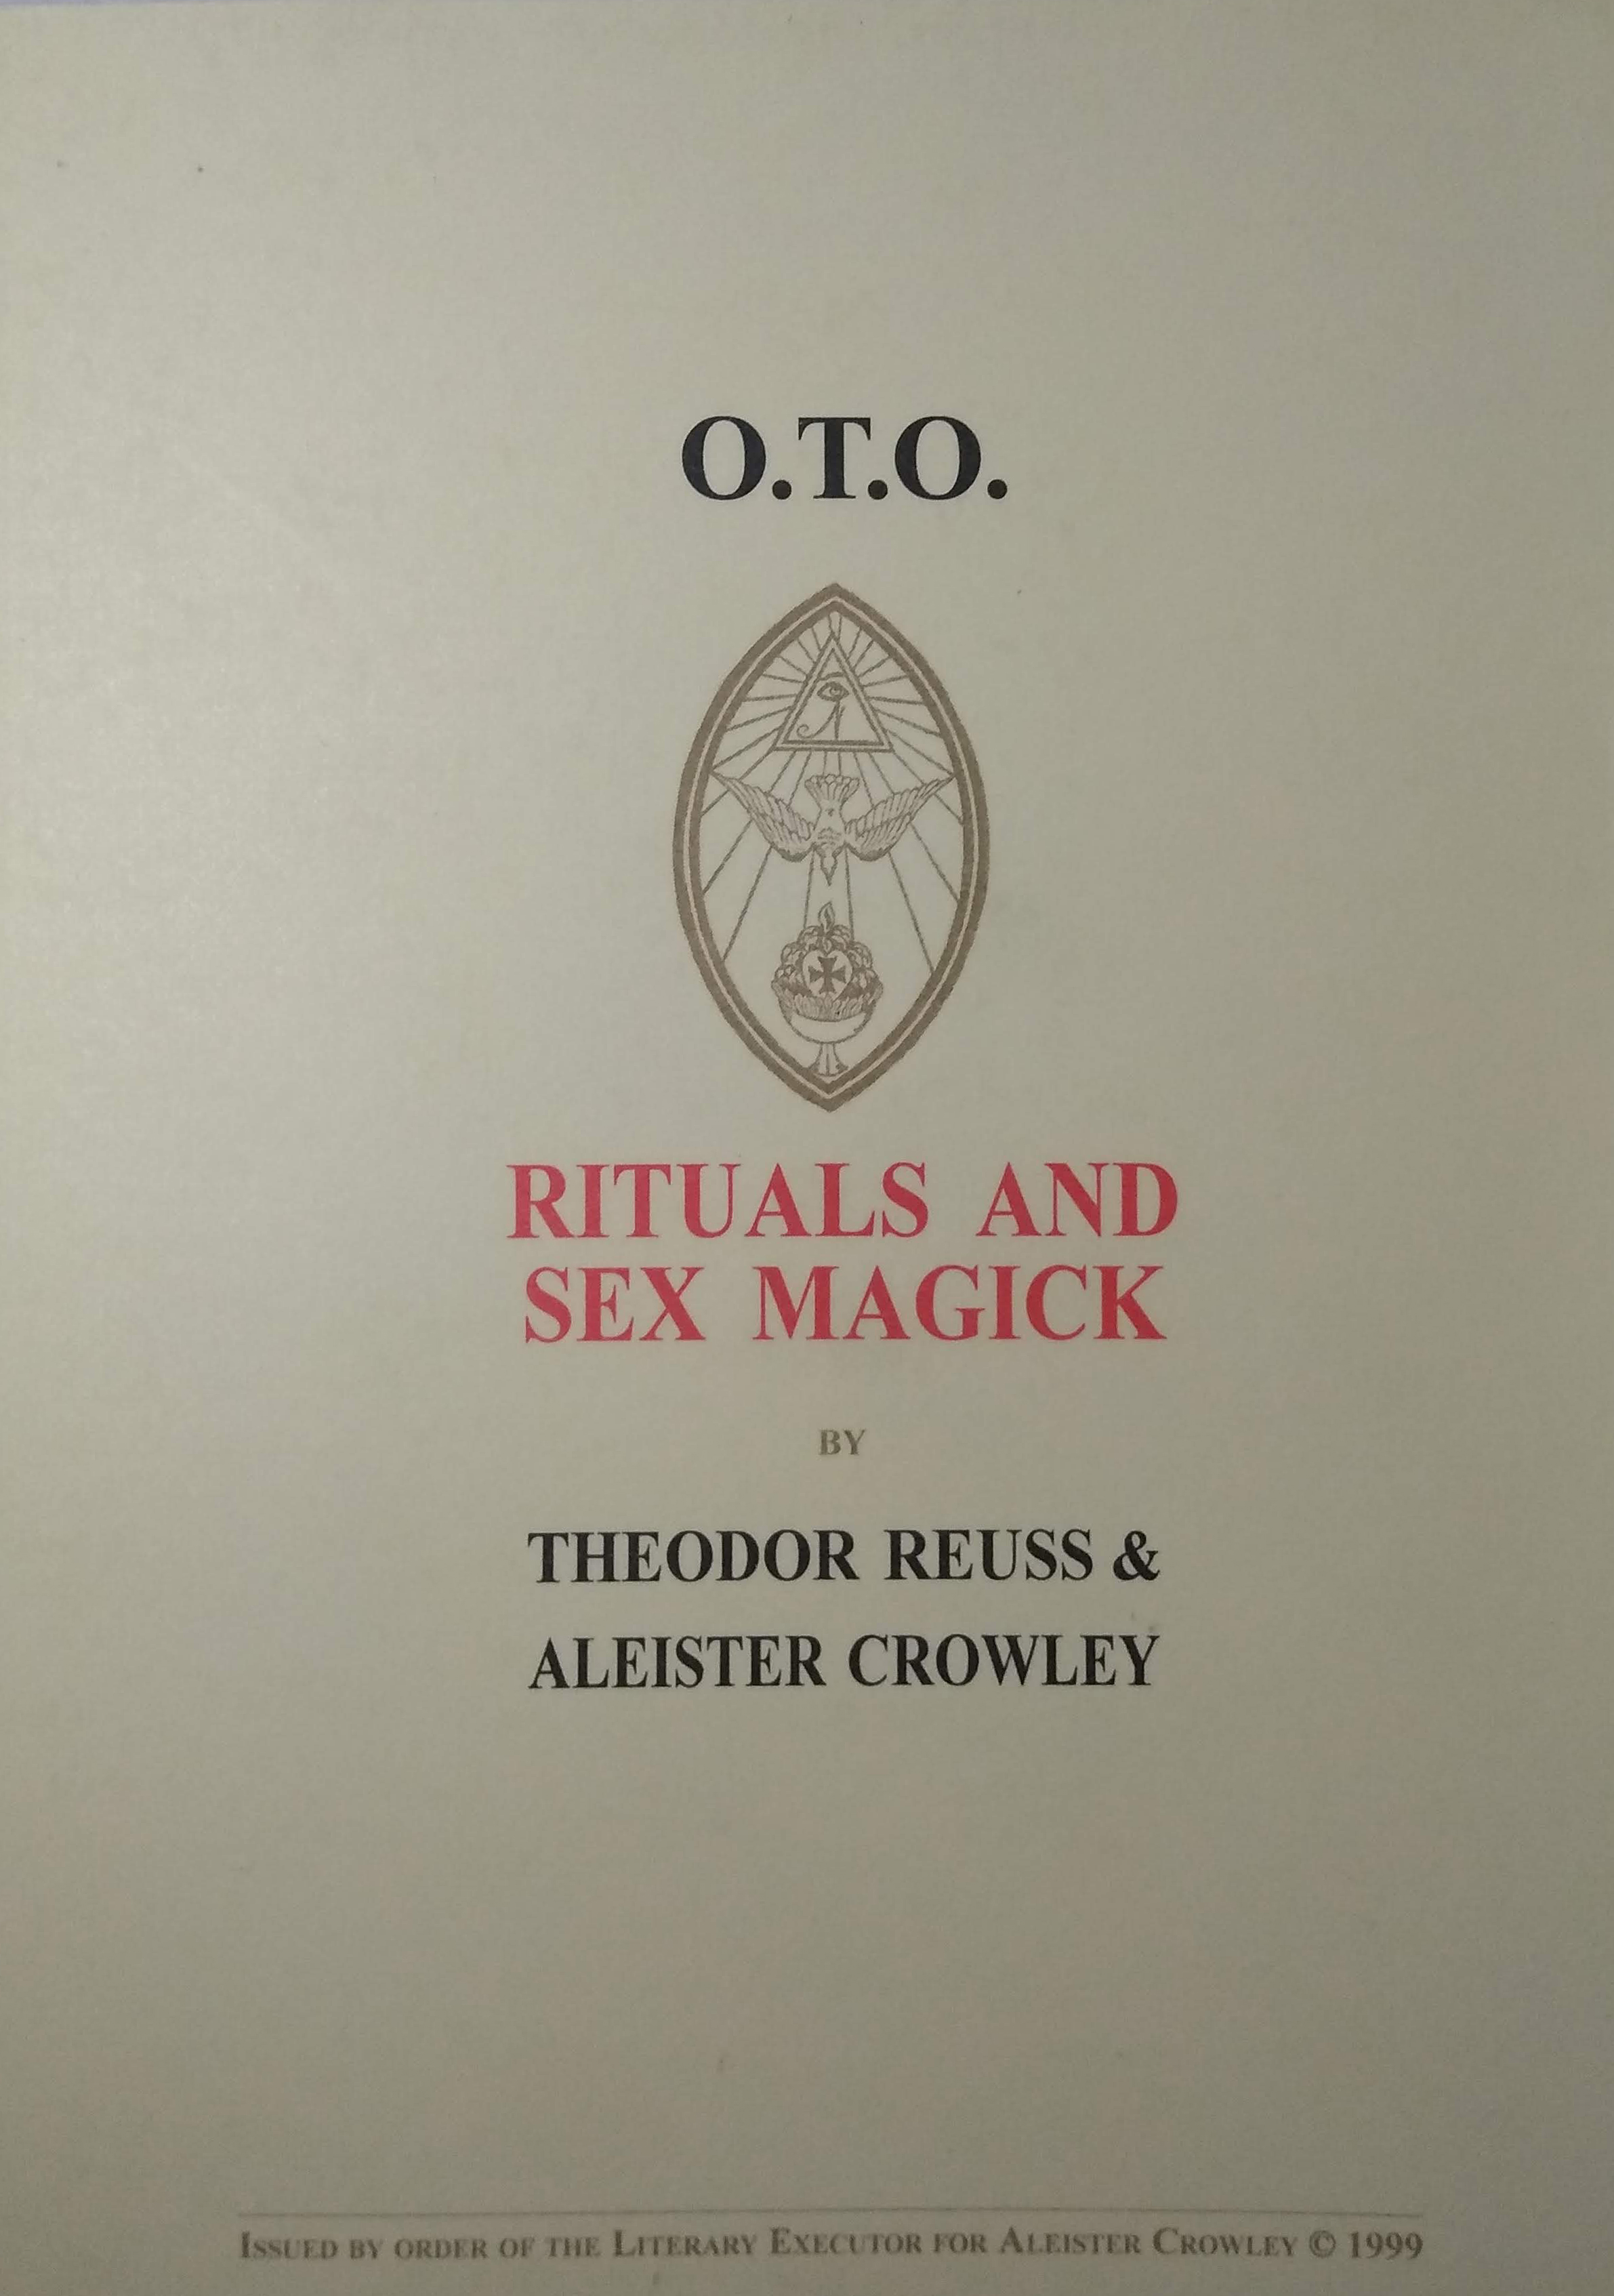 Rituals and Sex Magick